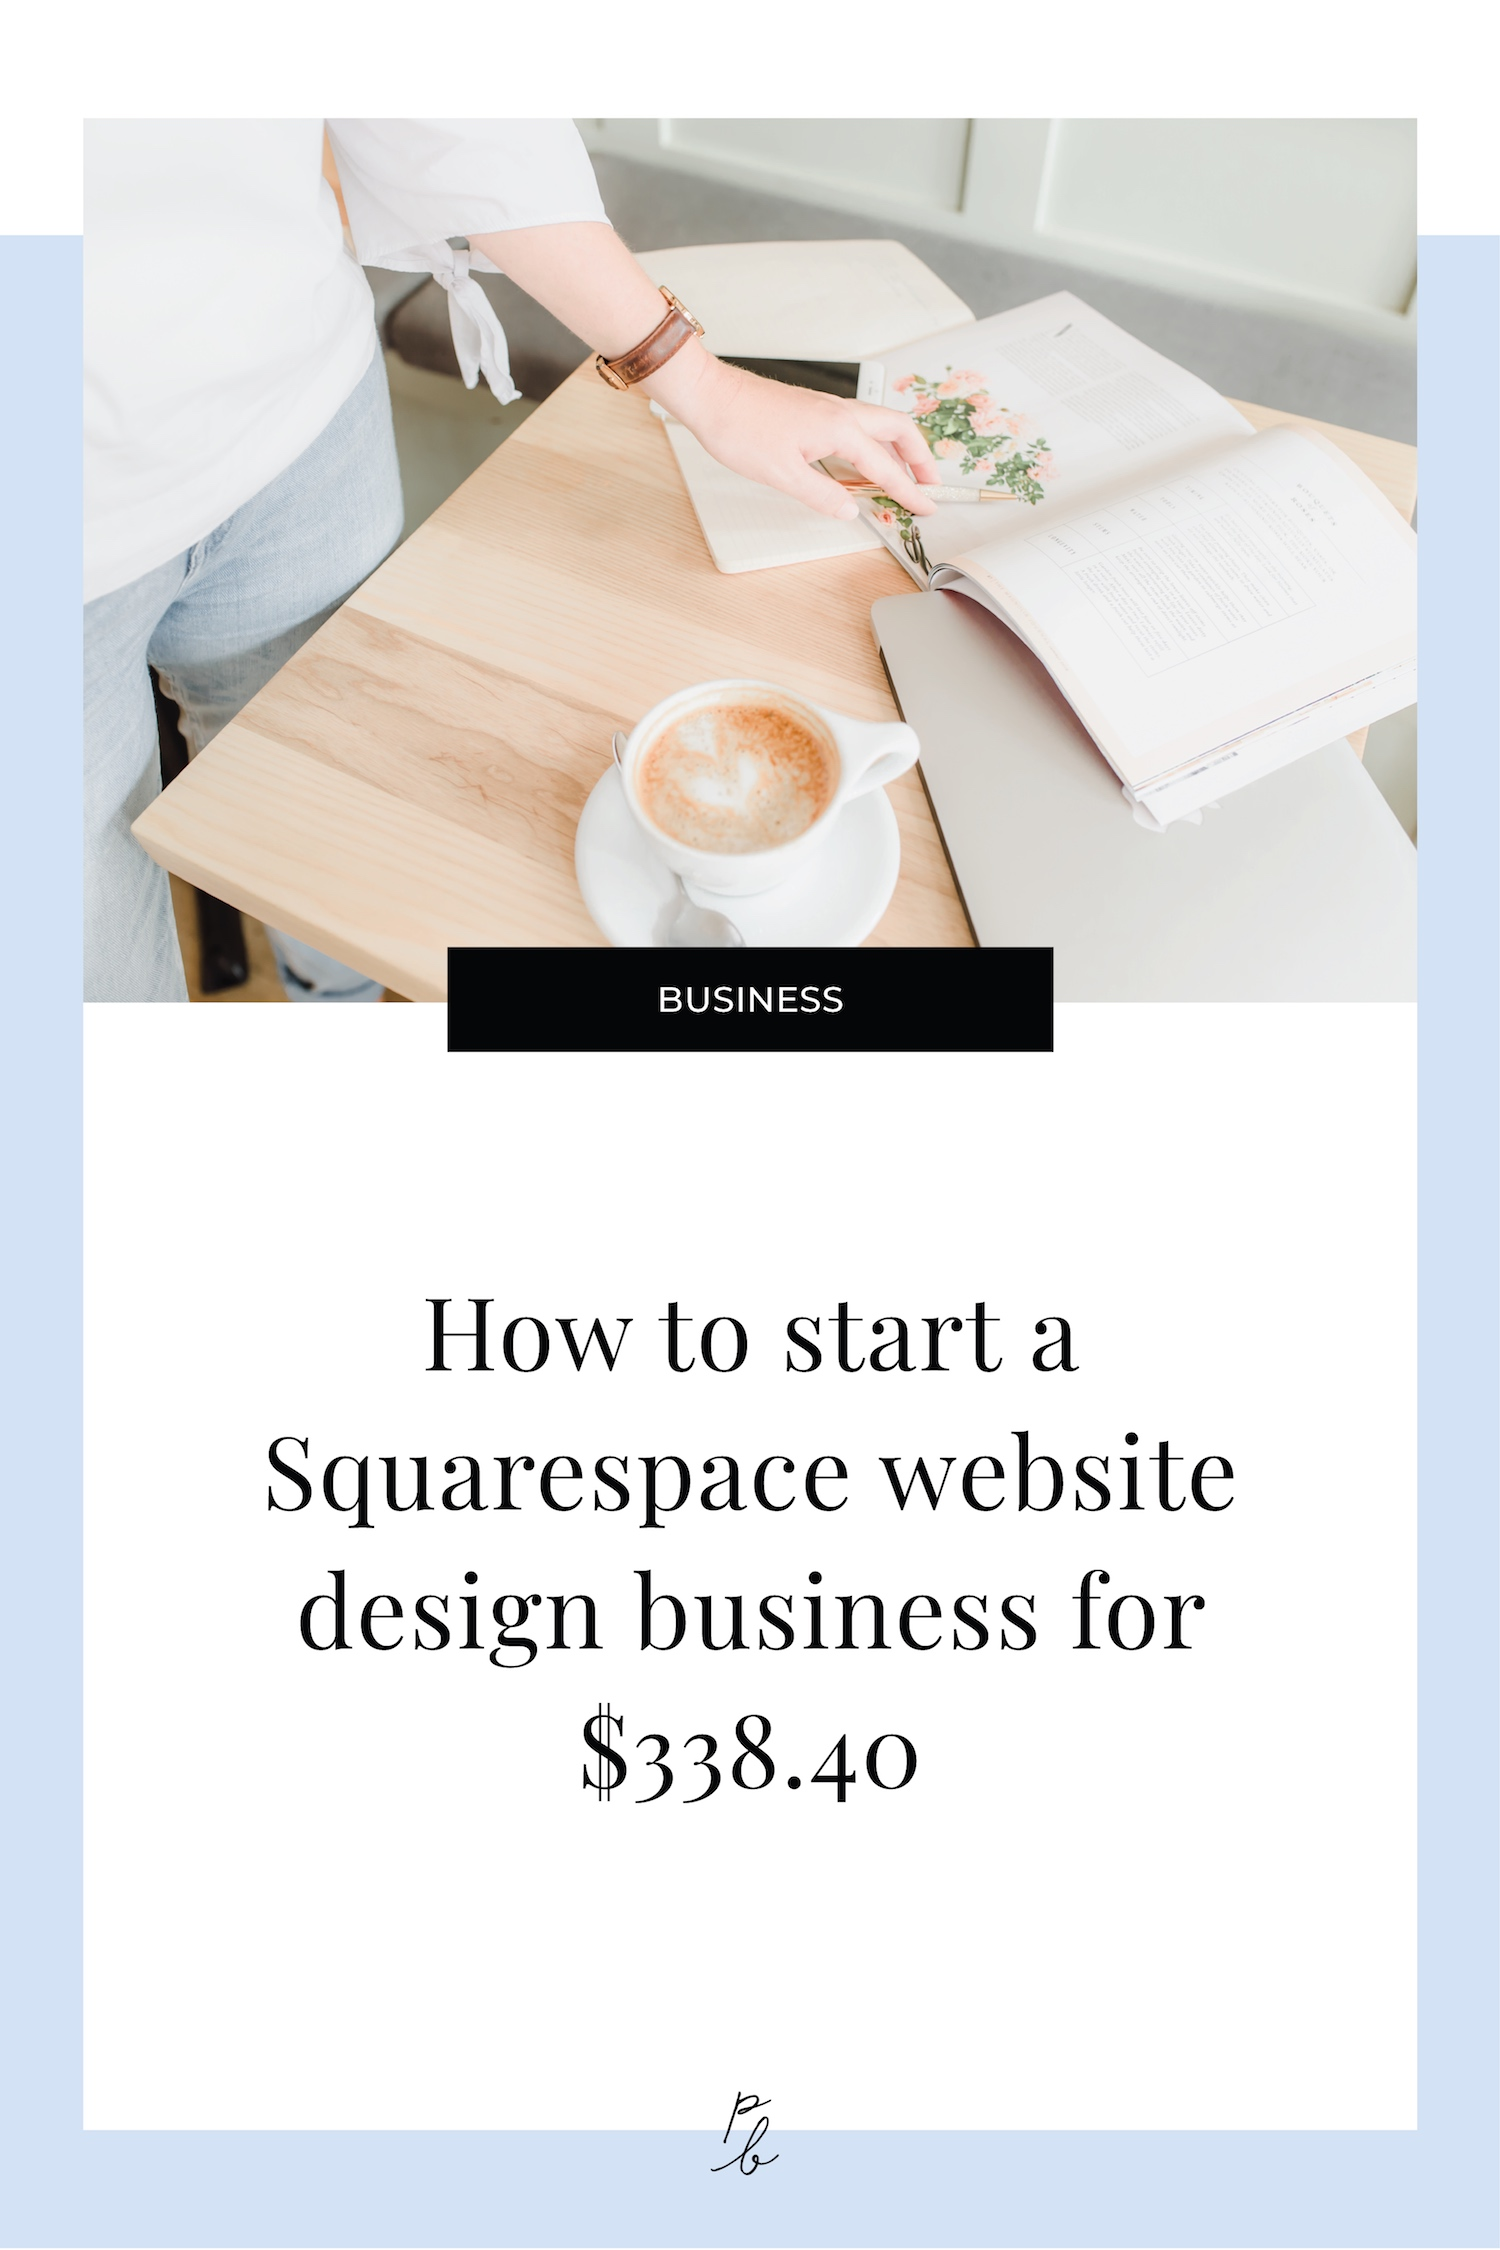 How to start a Squarespace website design business for $338.40.jpg